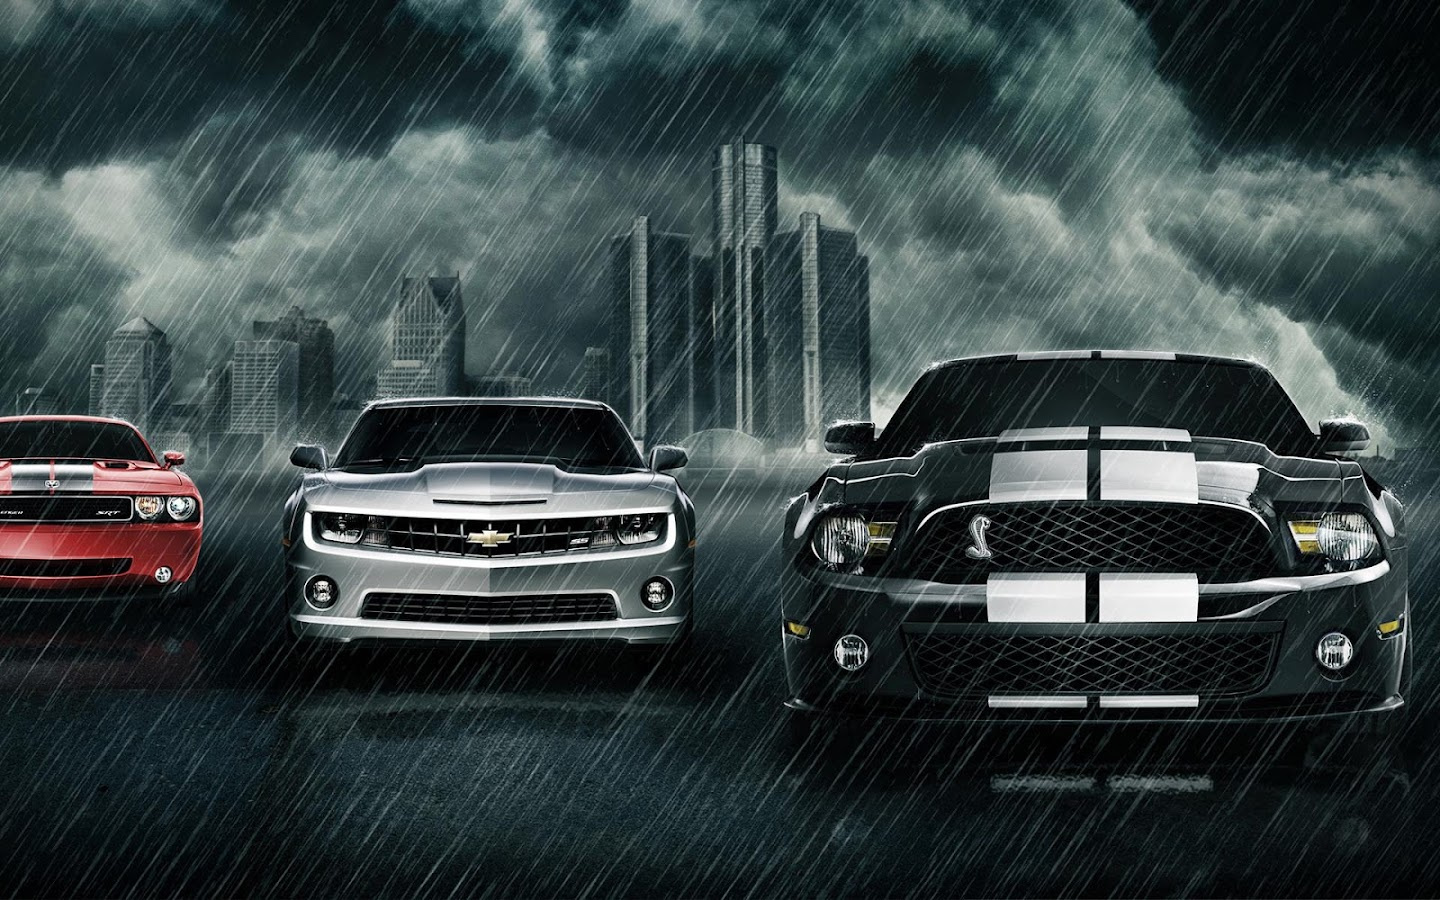 car wallpapers hd 1.0 apk download - android entertainment apps